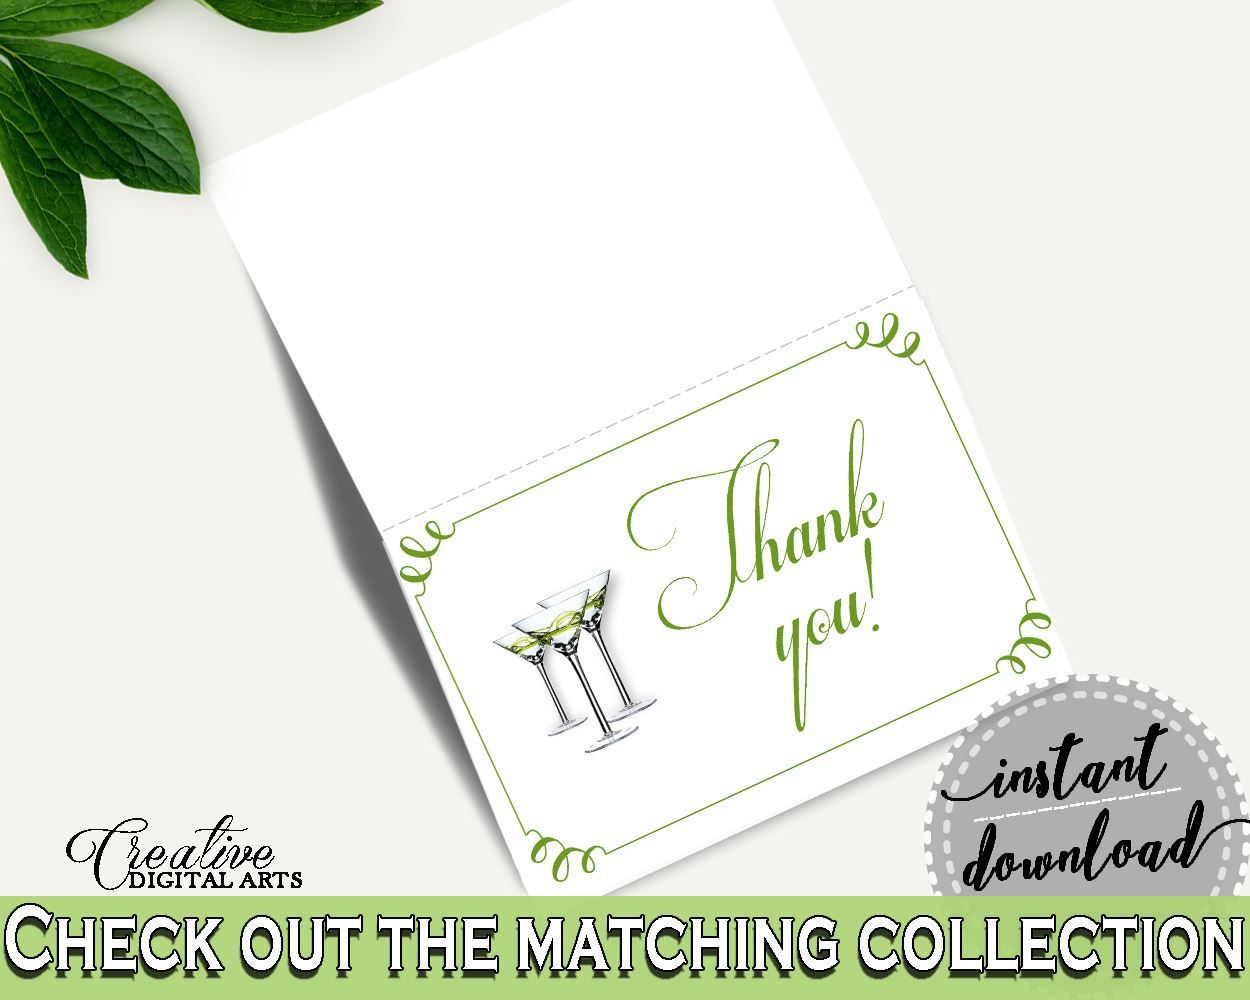 Thank You Card Bridal Shower Thank You Card Modern Martini Bridal Shower Thank You Card Bridal Shower Modern Martini Thank You Card ARTAN - Digital Product #bride #bridal